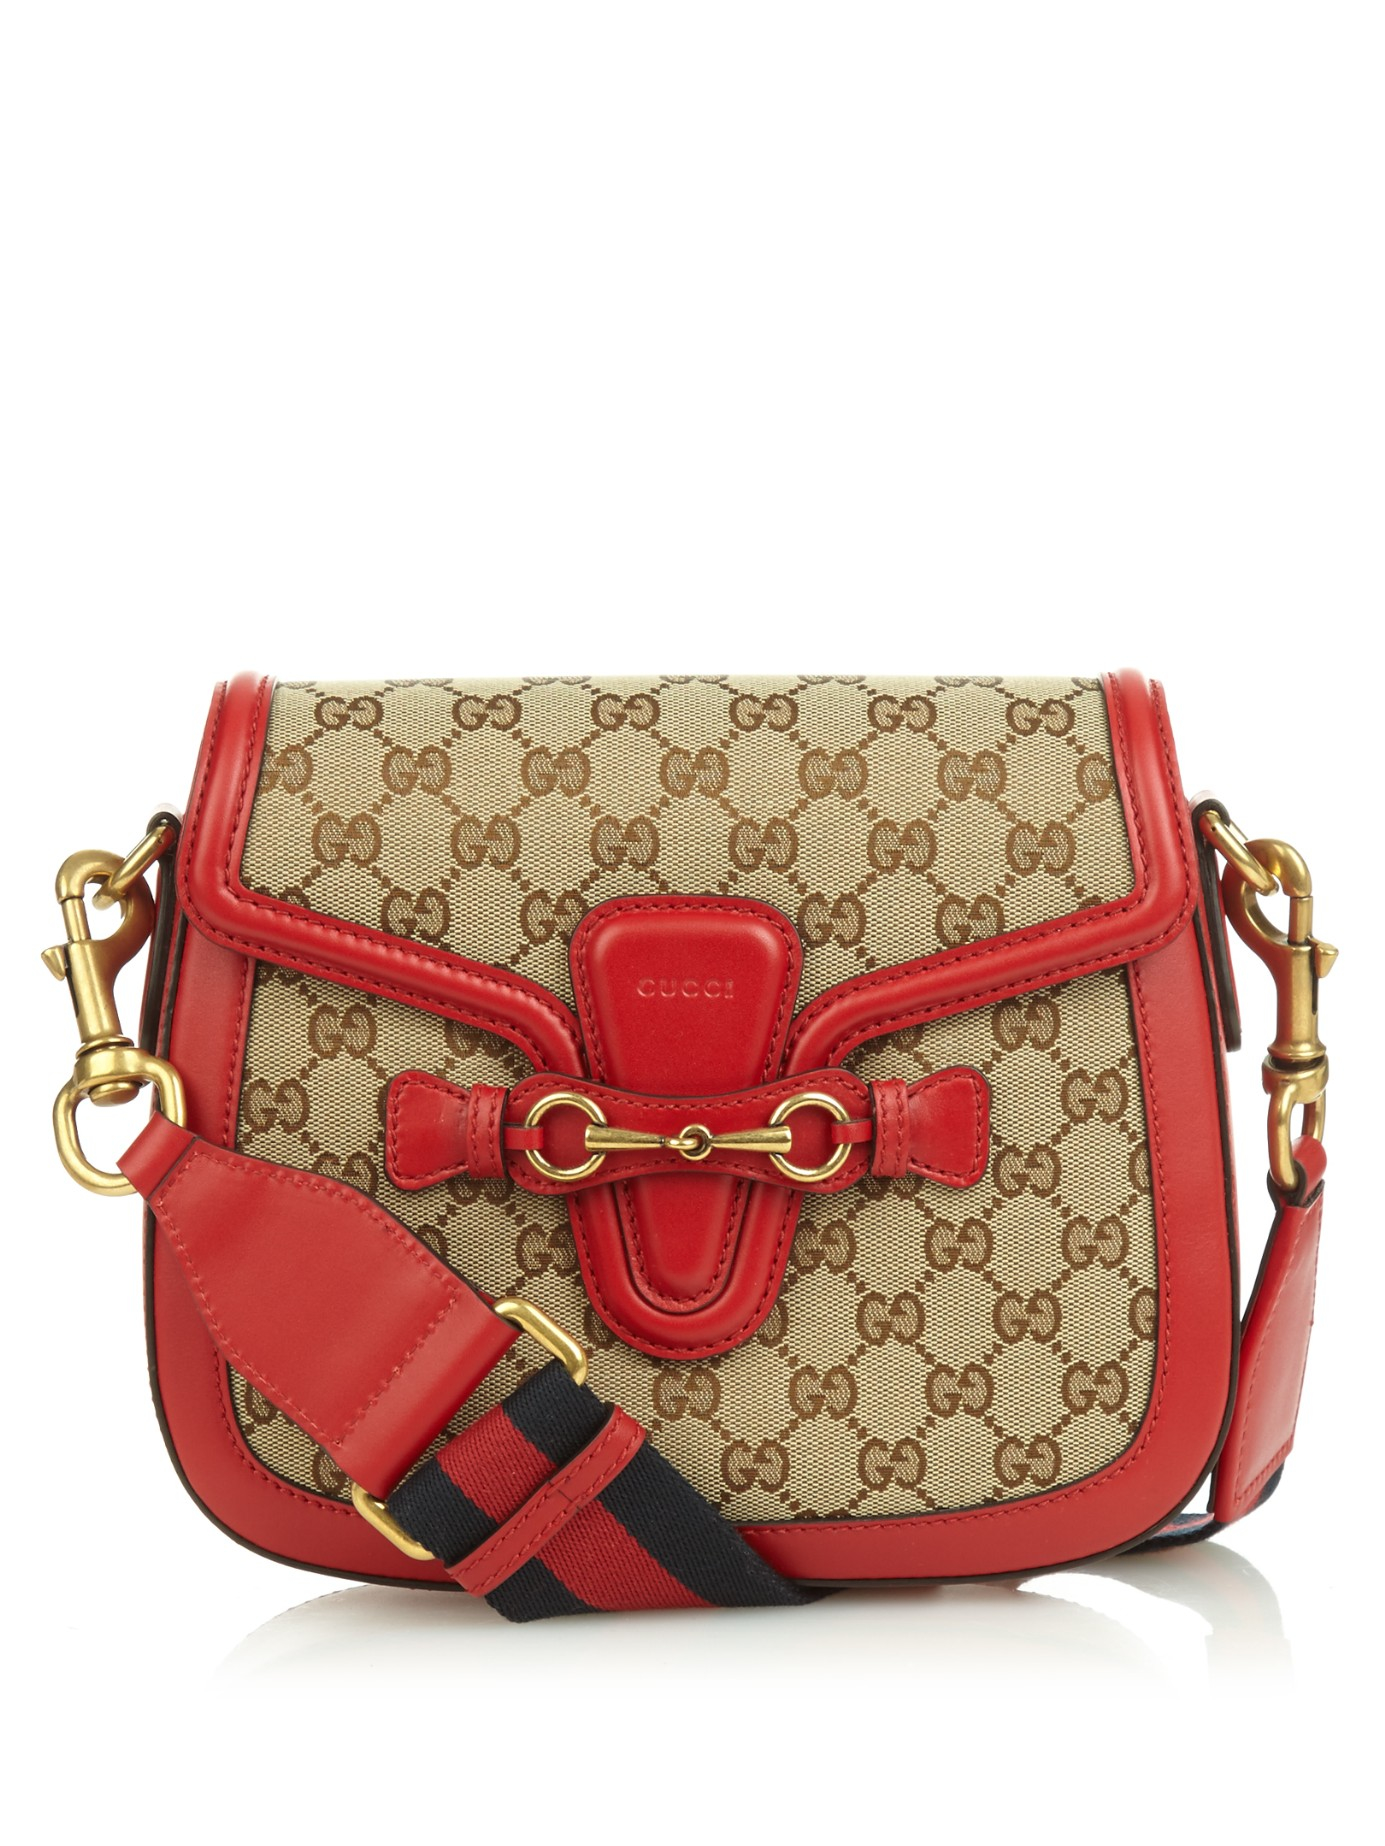 9d1dc1ab063 Lyst - Gucci Lady Web Medium Canvas And Leather Shoulder Bag in Red